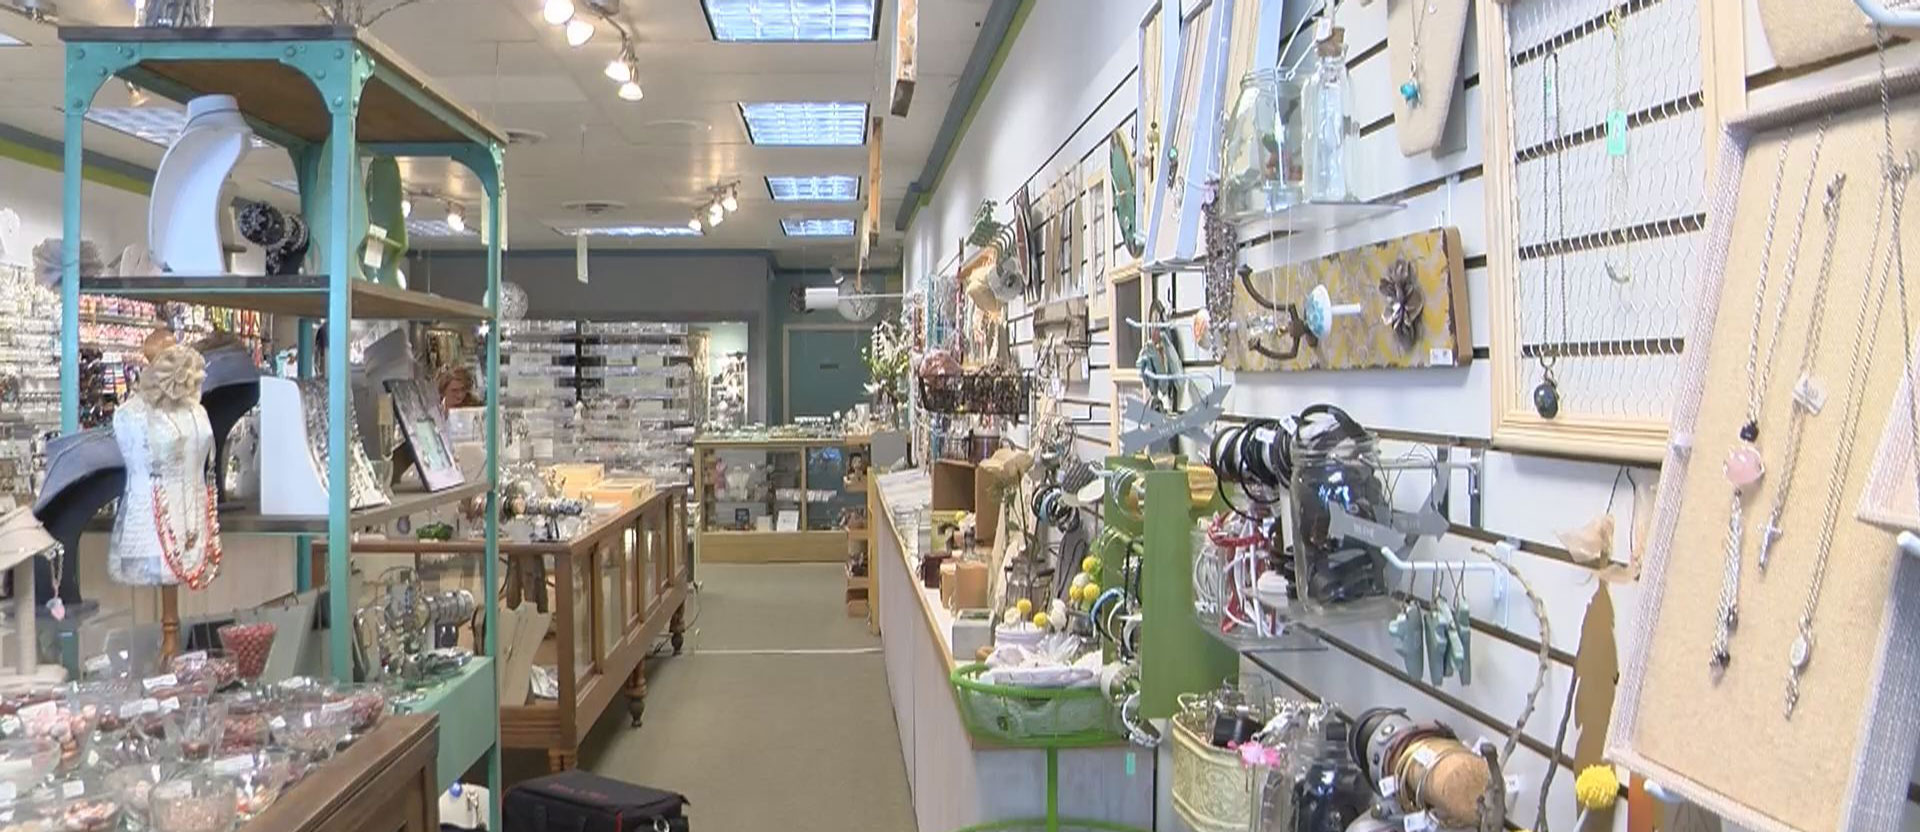 Downtown sioux falls store expands offerings